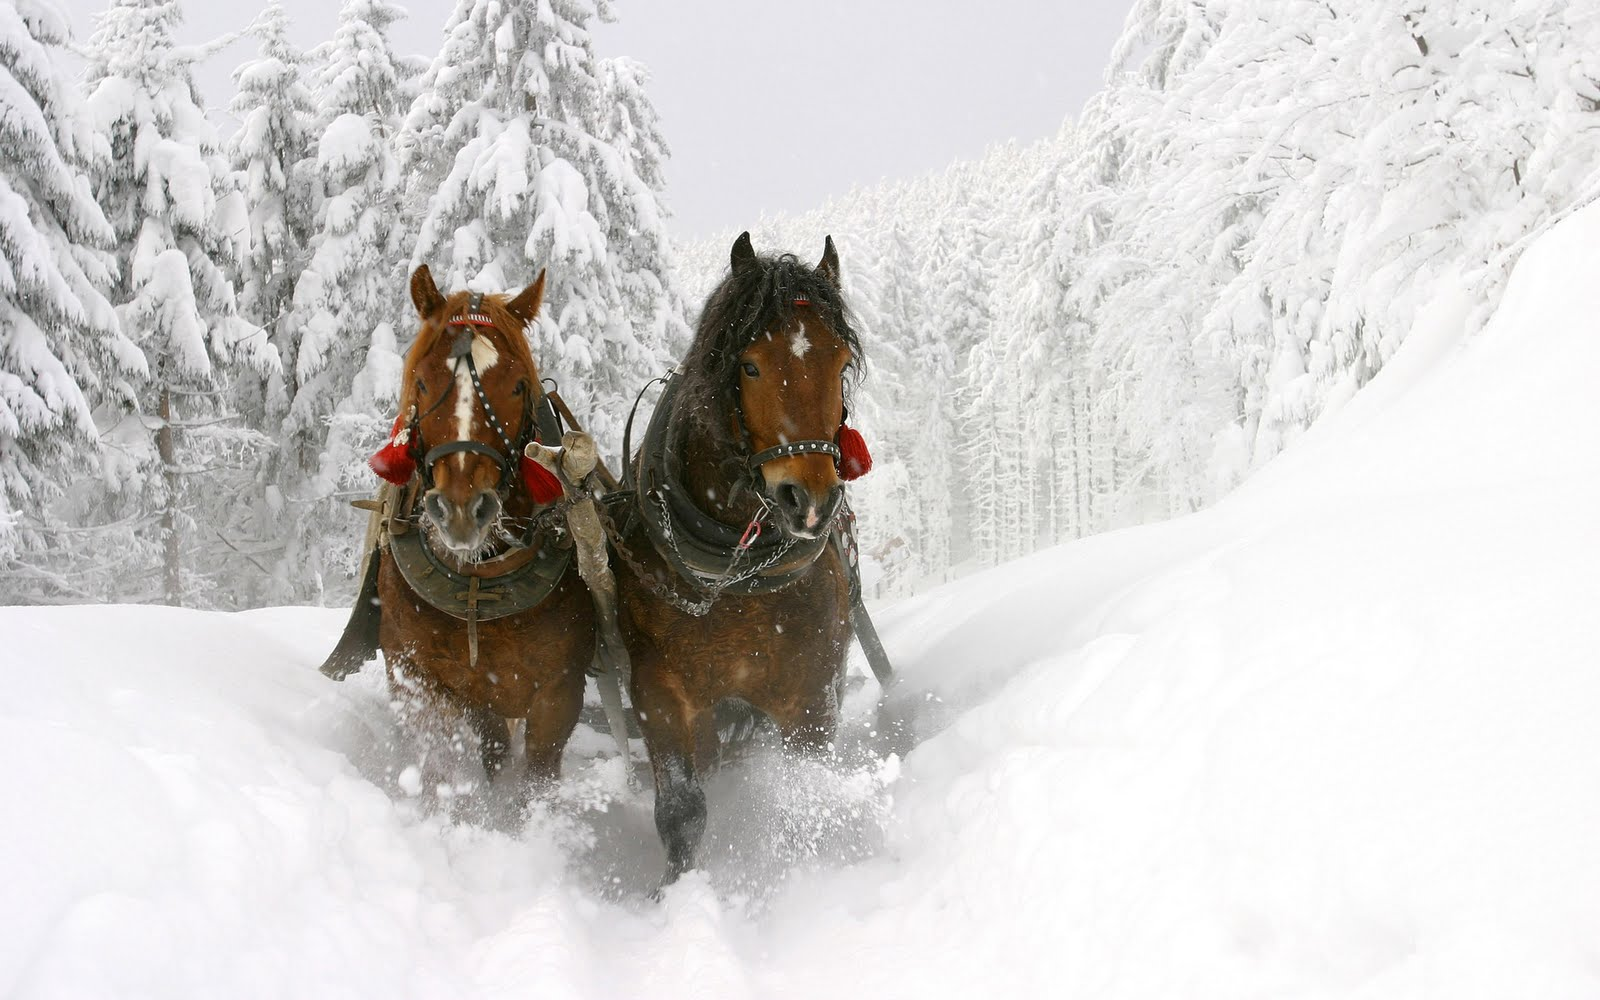 Forest Animal Wallpaper Animal Wallpapers Horses In Snow